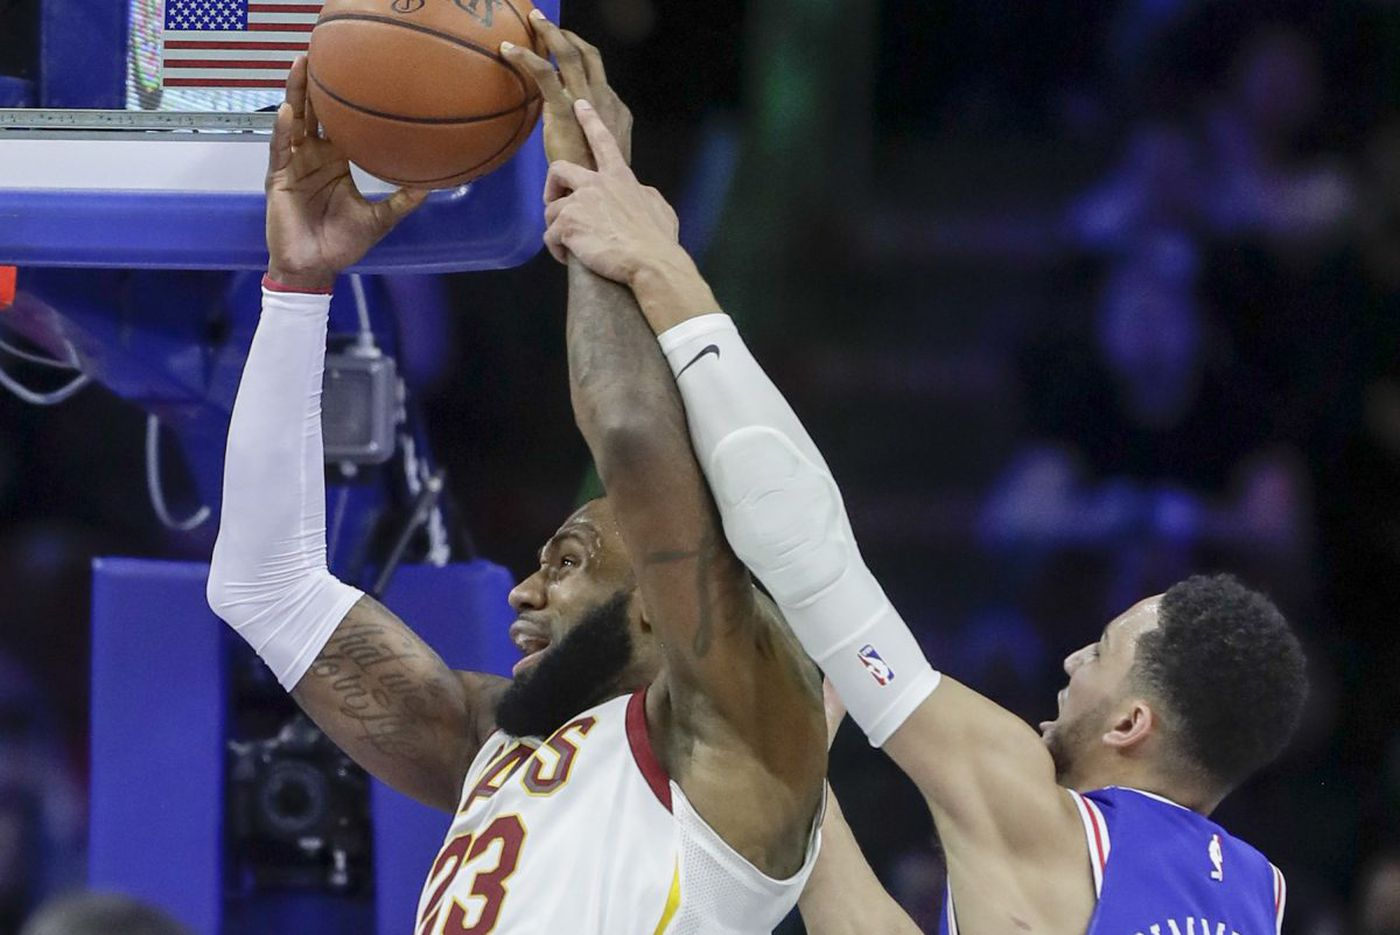 Sixers-Cavaliers: LeBron James leads Cavs, and other quick thoughts from a 113-91 loss